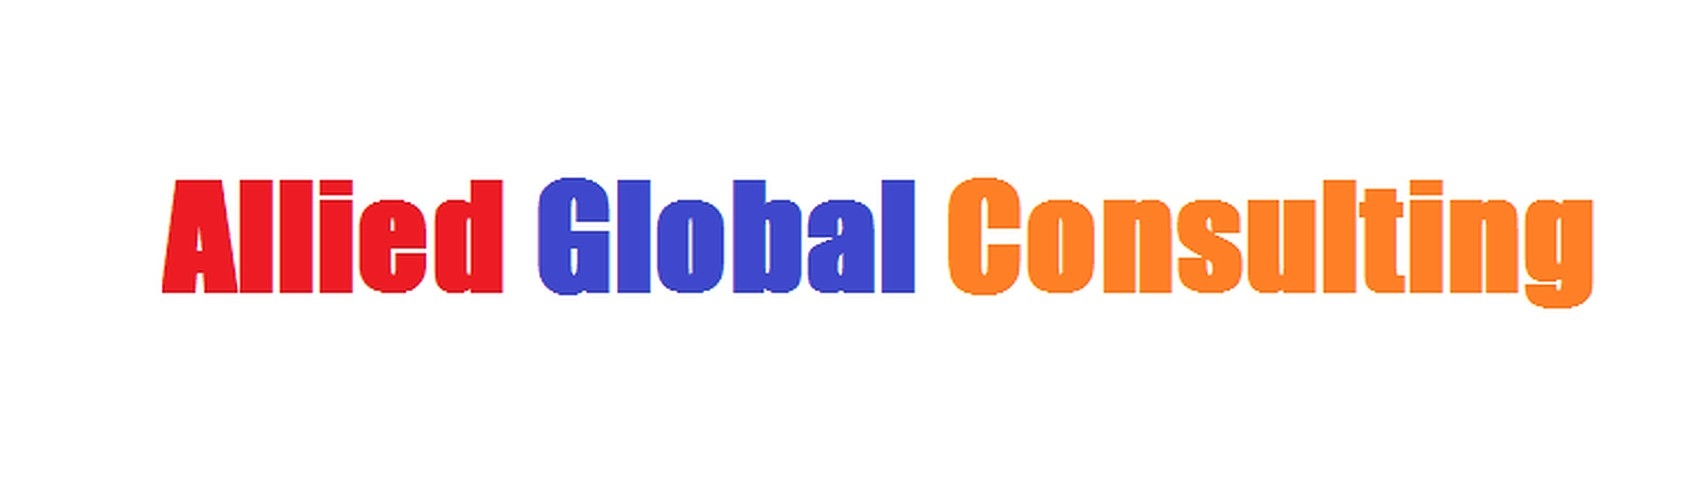 Allied Global Consulting (@alliedglobalconsulting) Cover Image